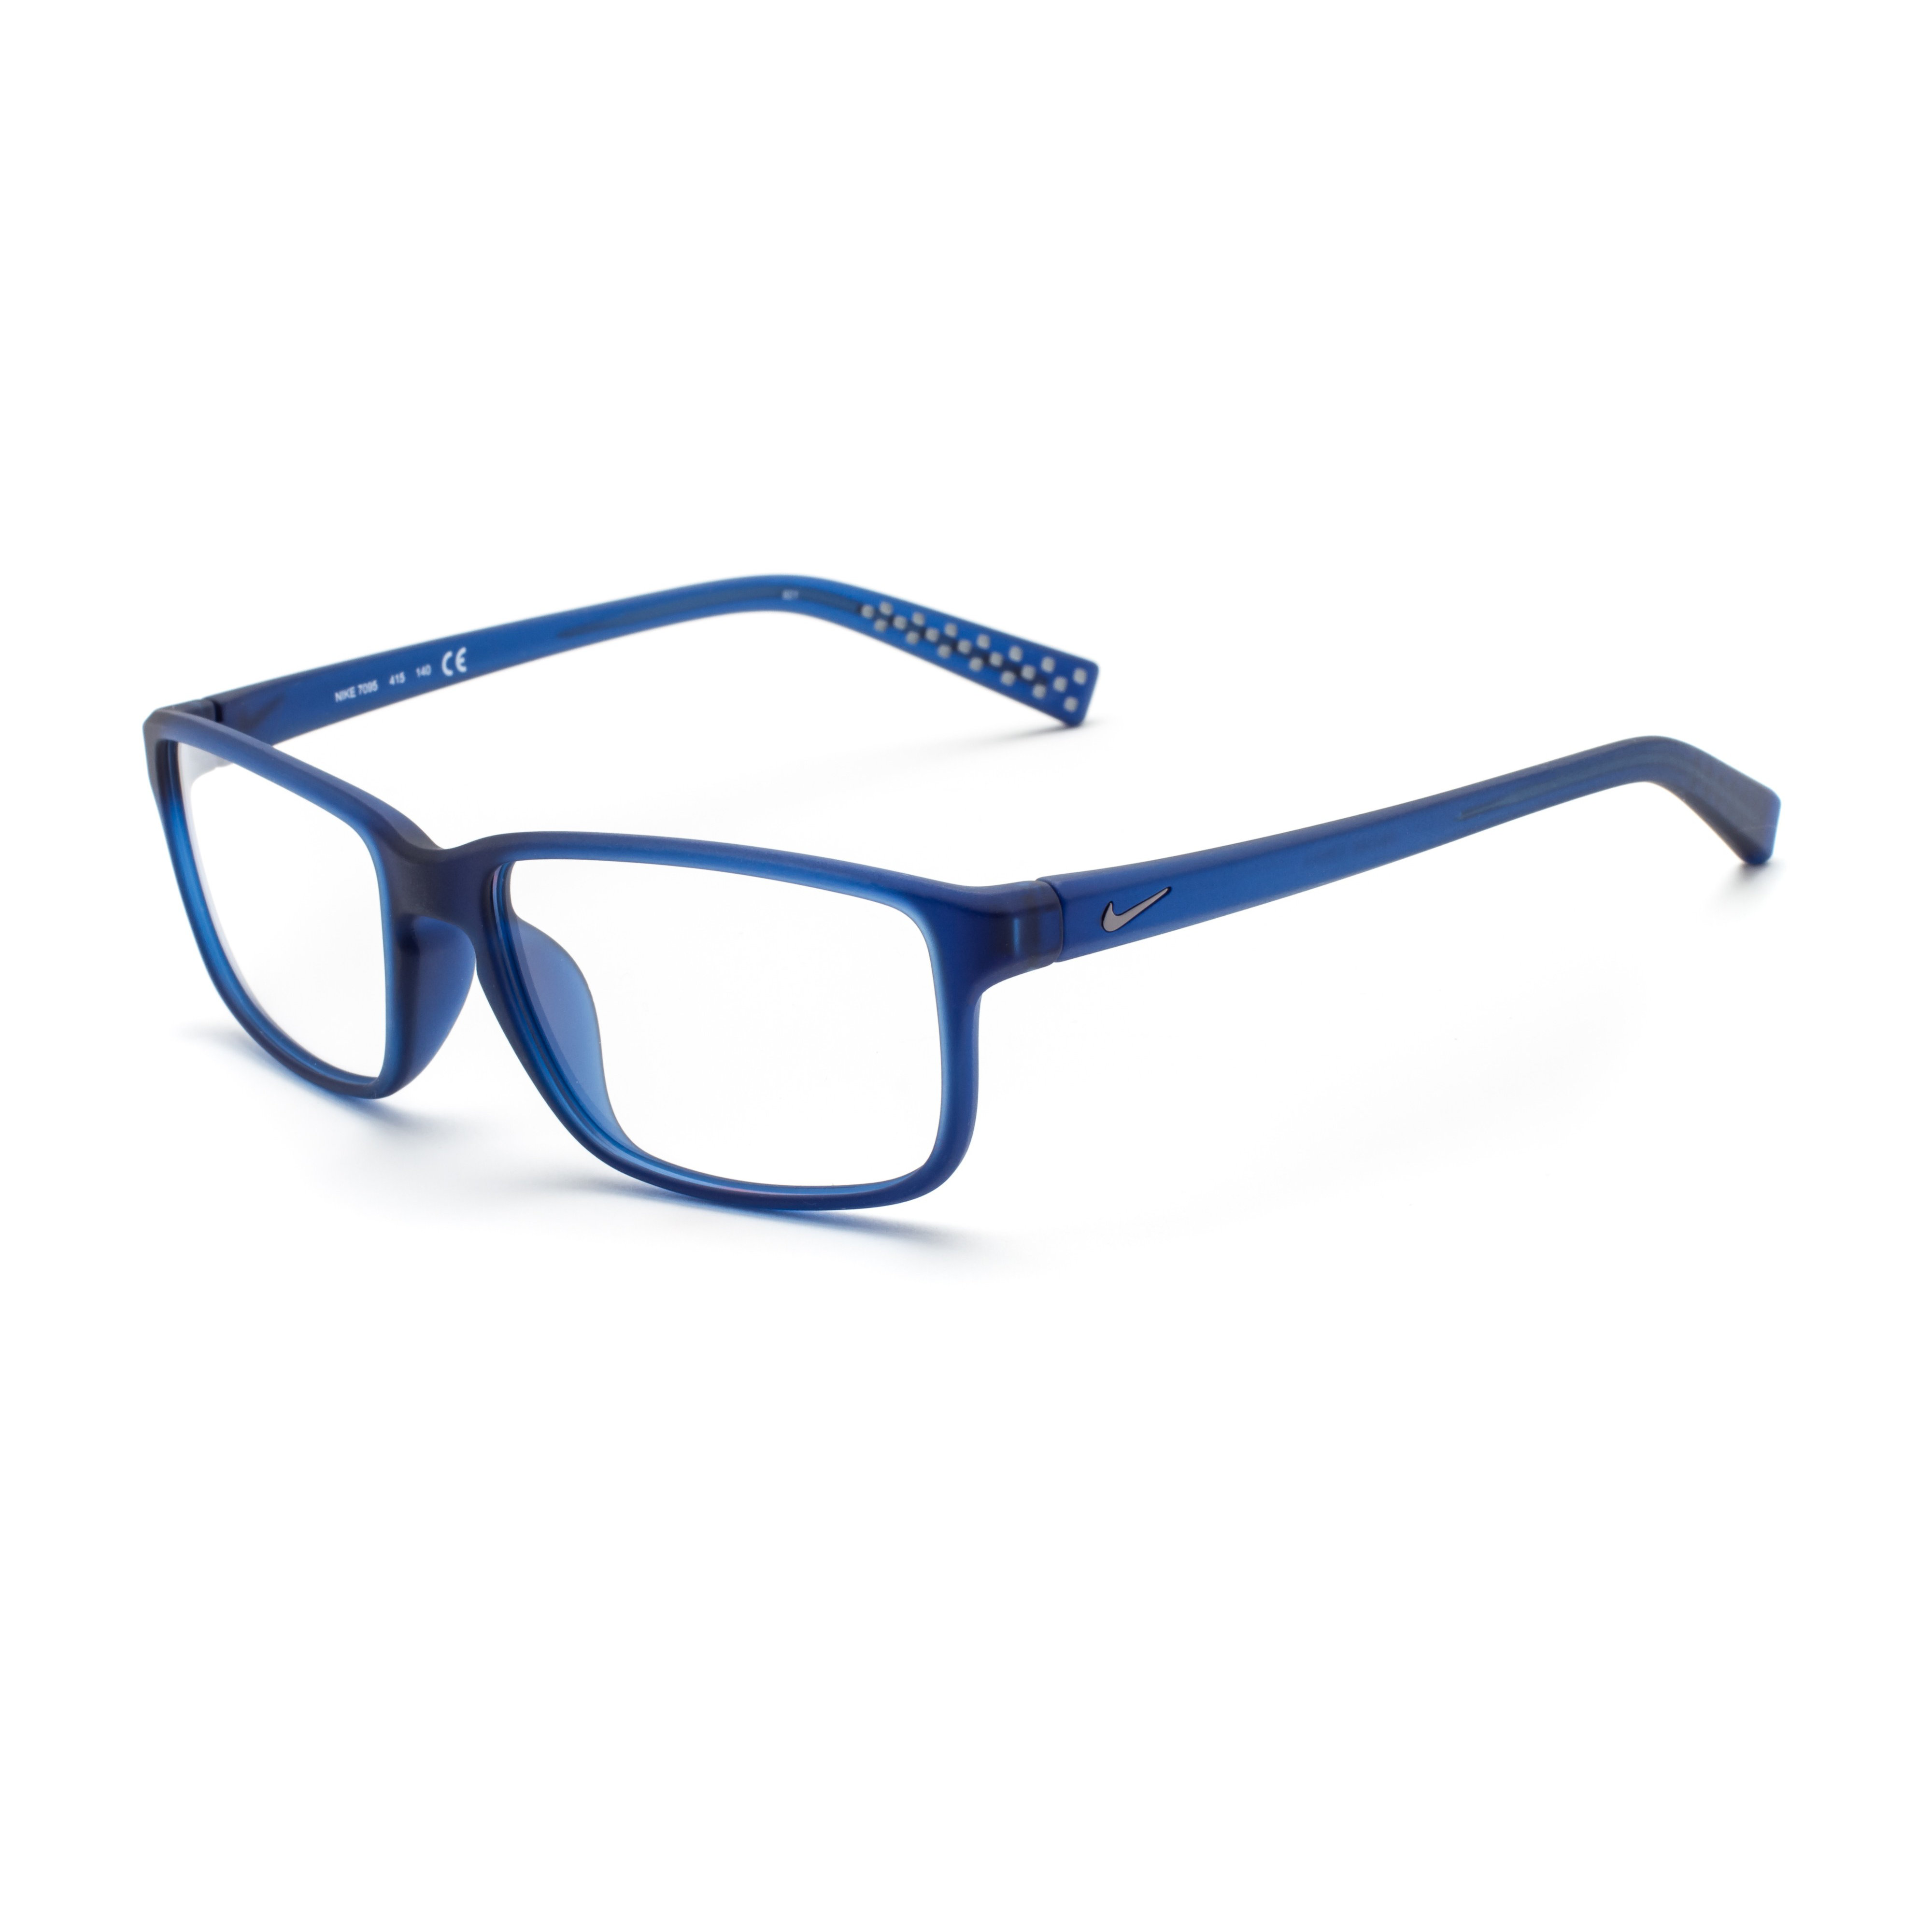 8593b462bb4 Nike 7095 Radiation Protection Glasses